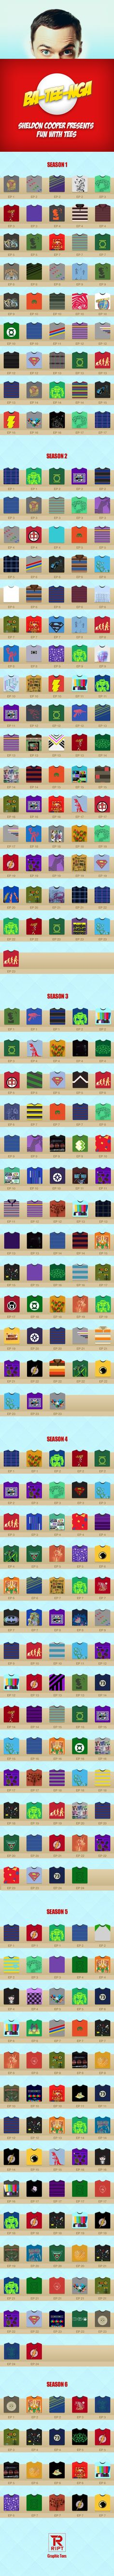 Every T-Shirt Sheldon Has Worn. BigBangTheory!